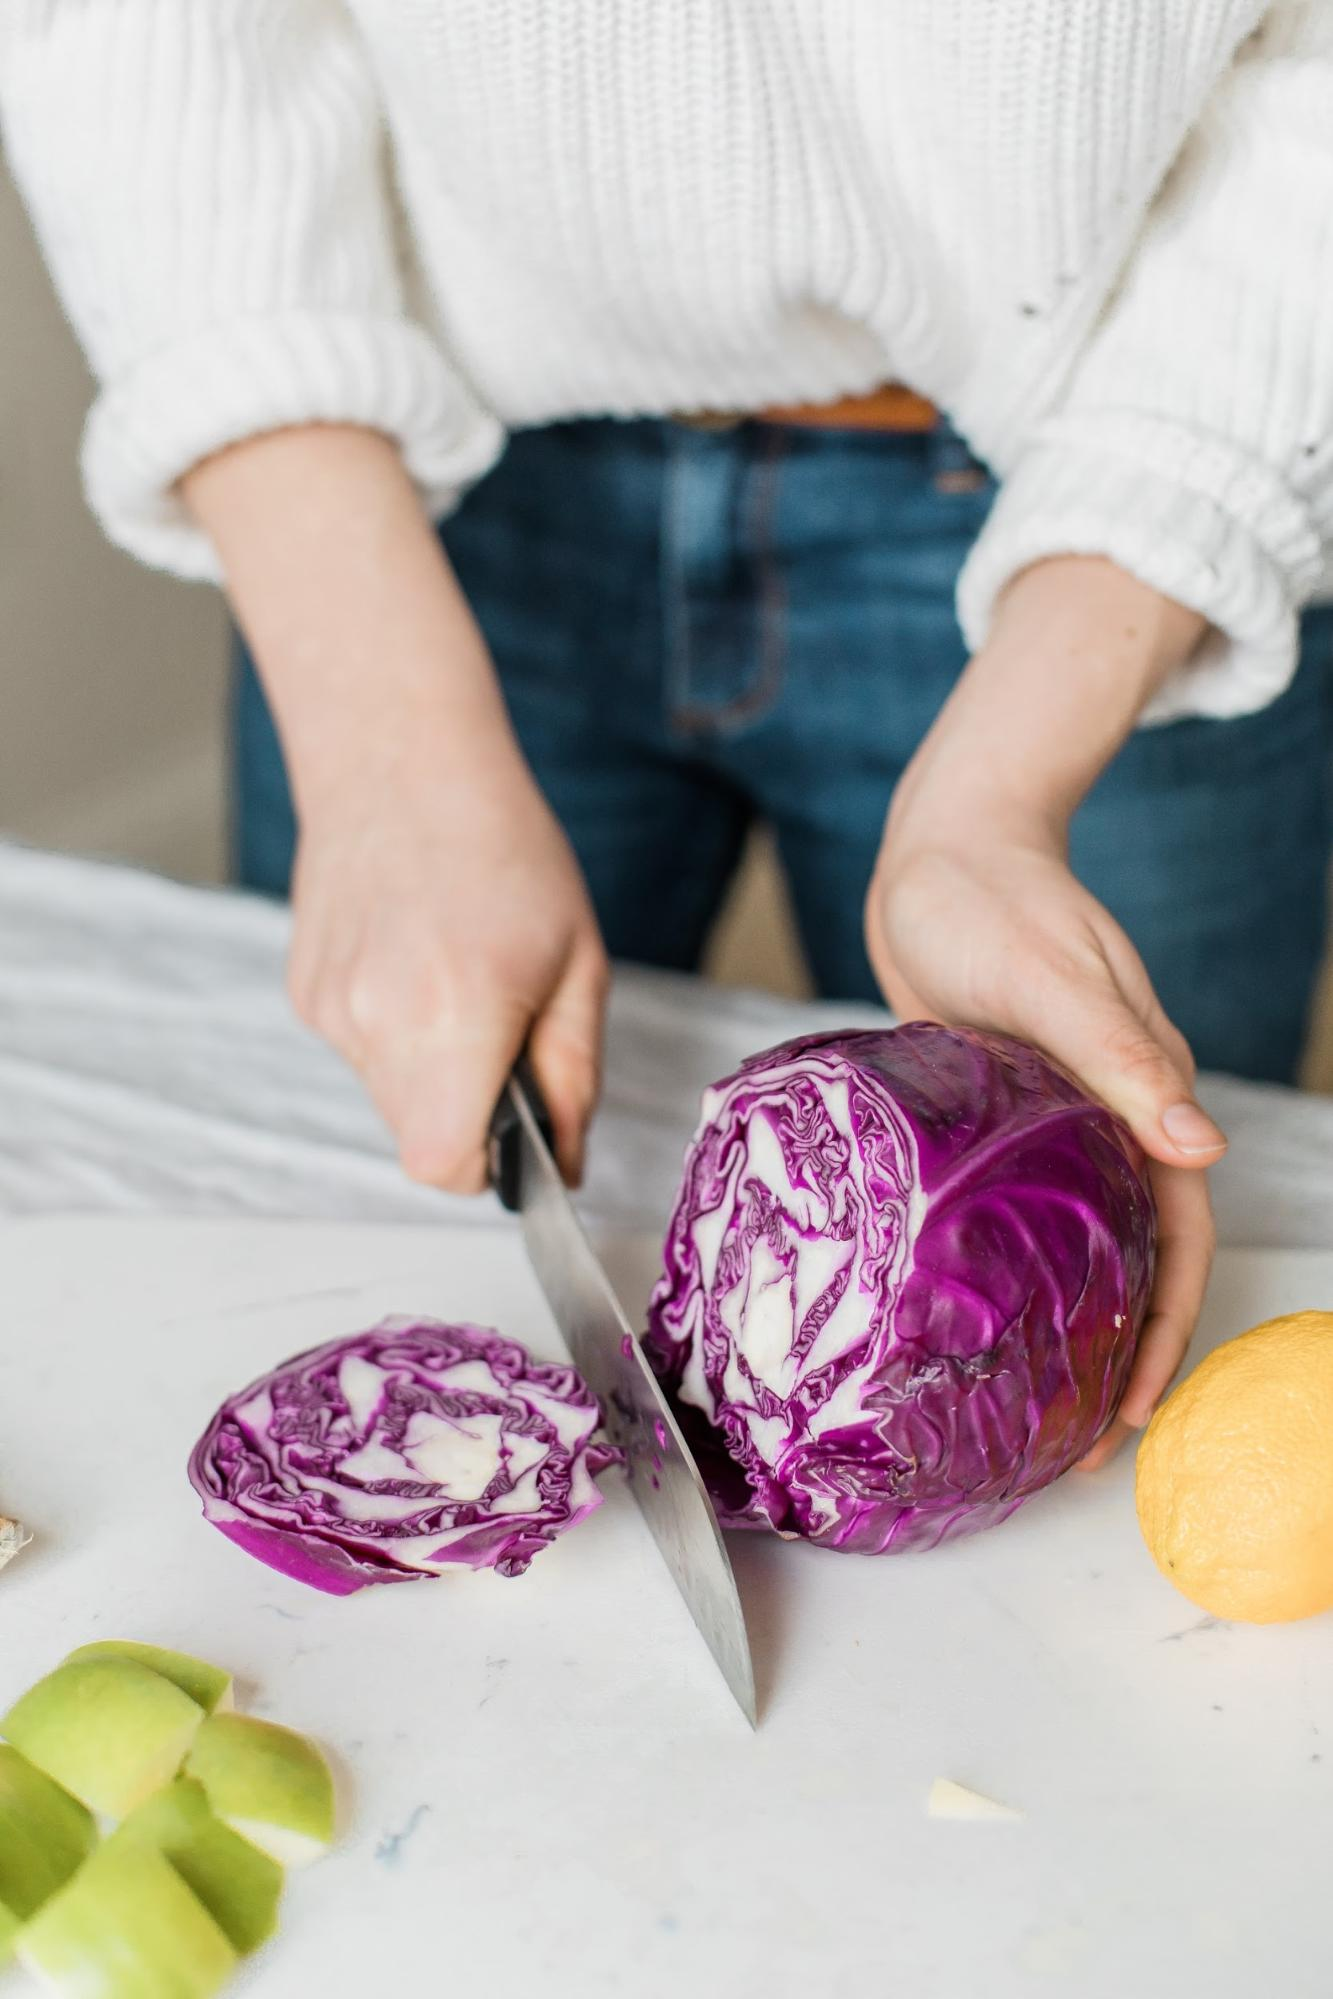 The image shows hands slice a large purple cabbage on a cutting board.